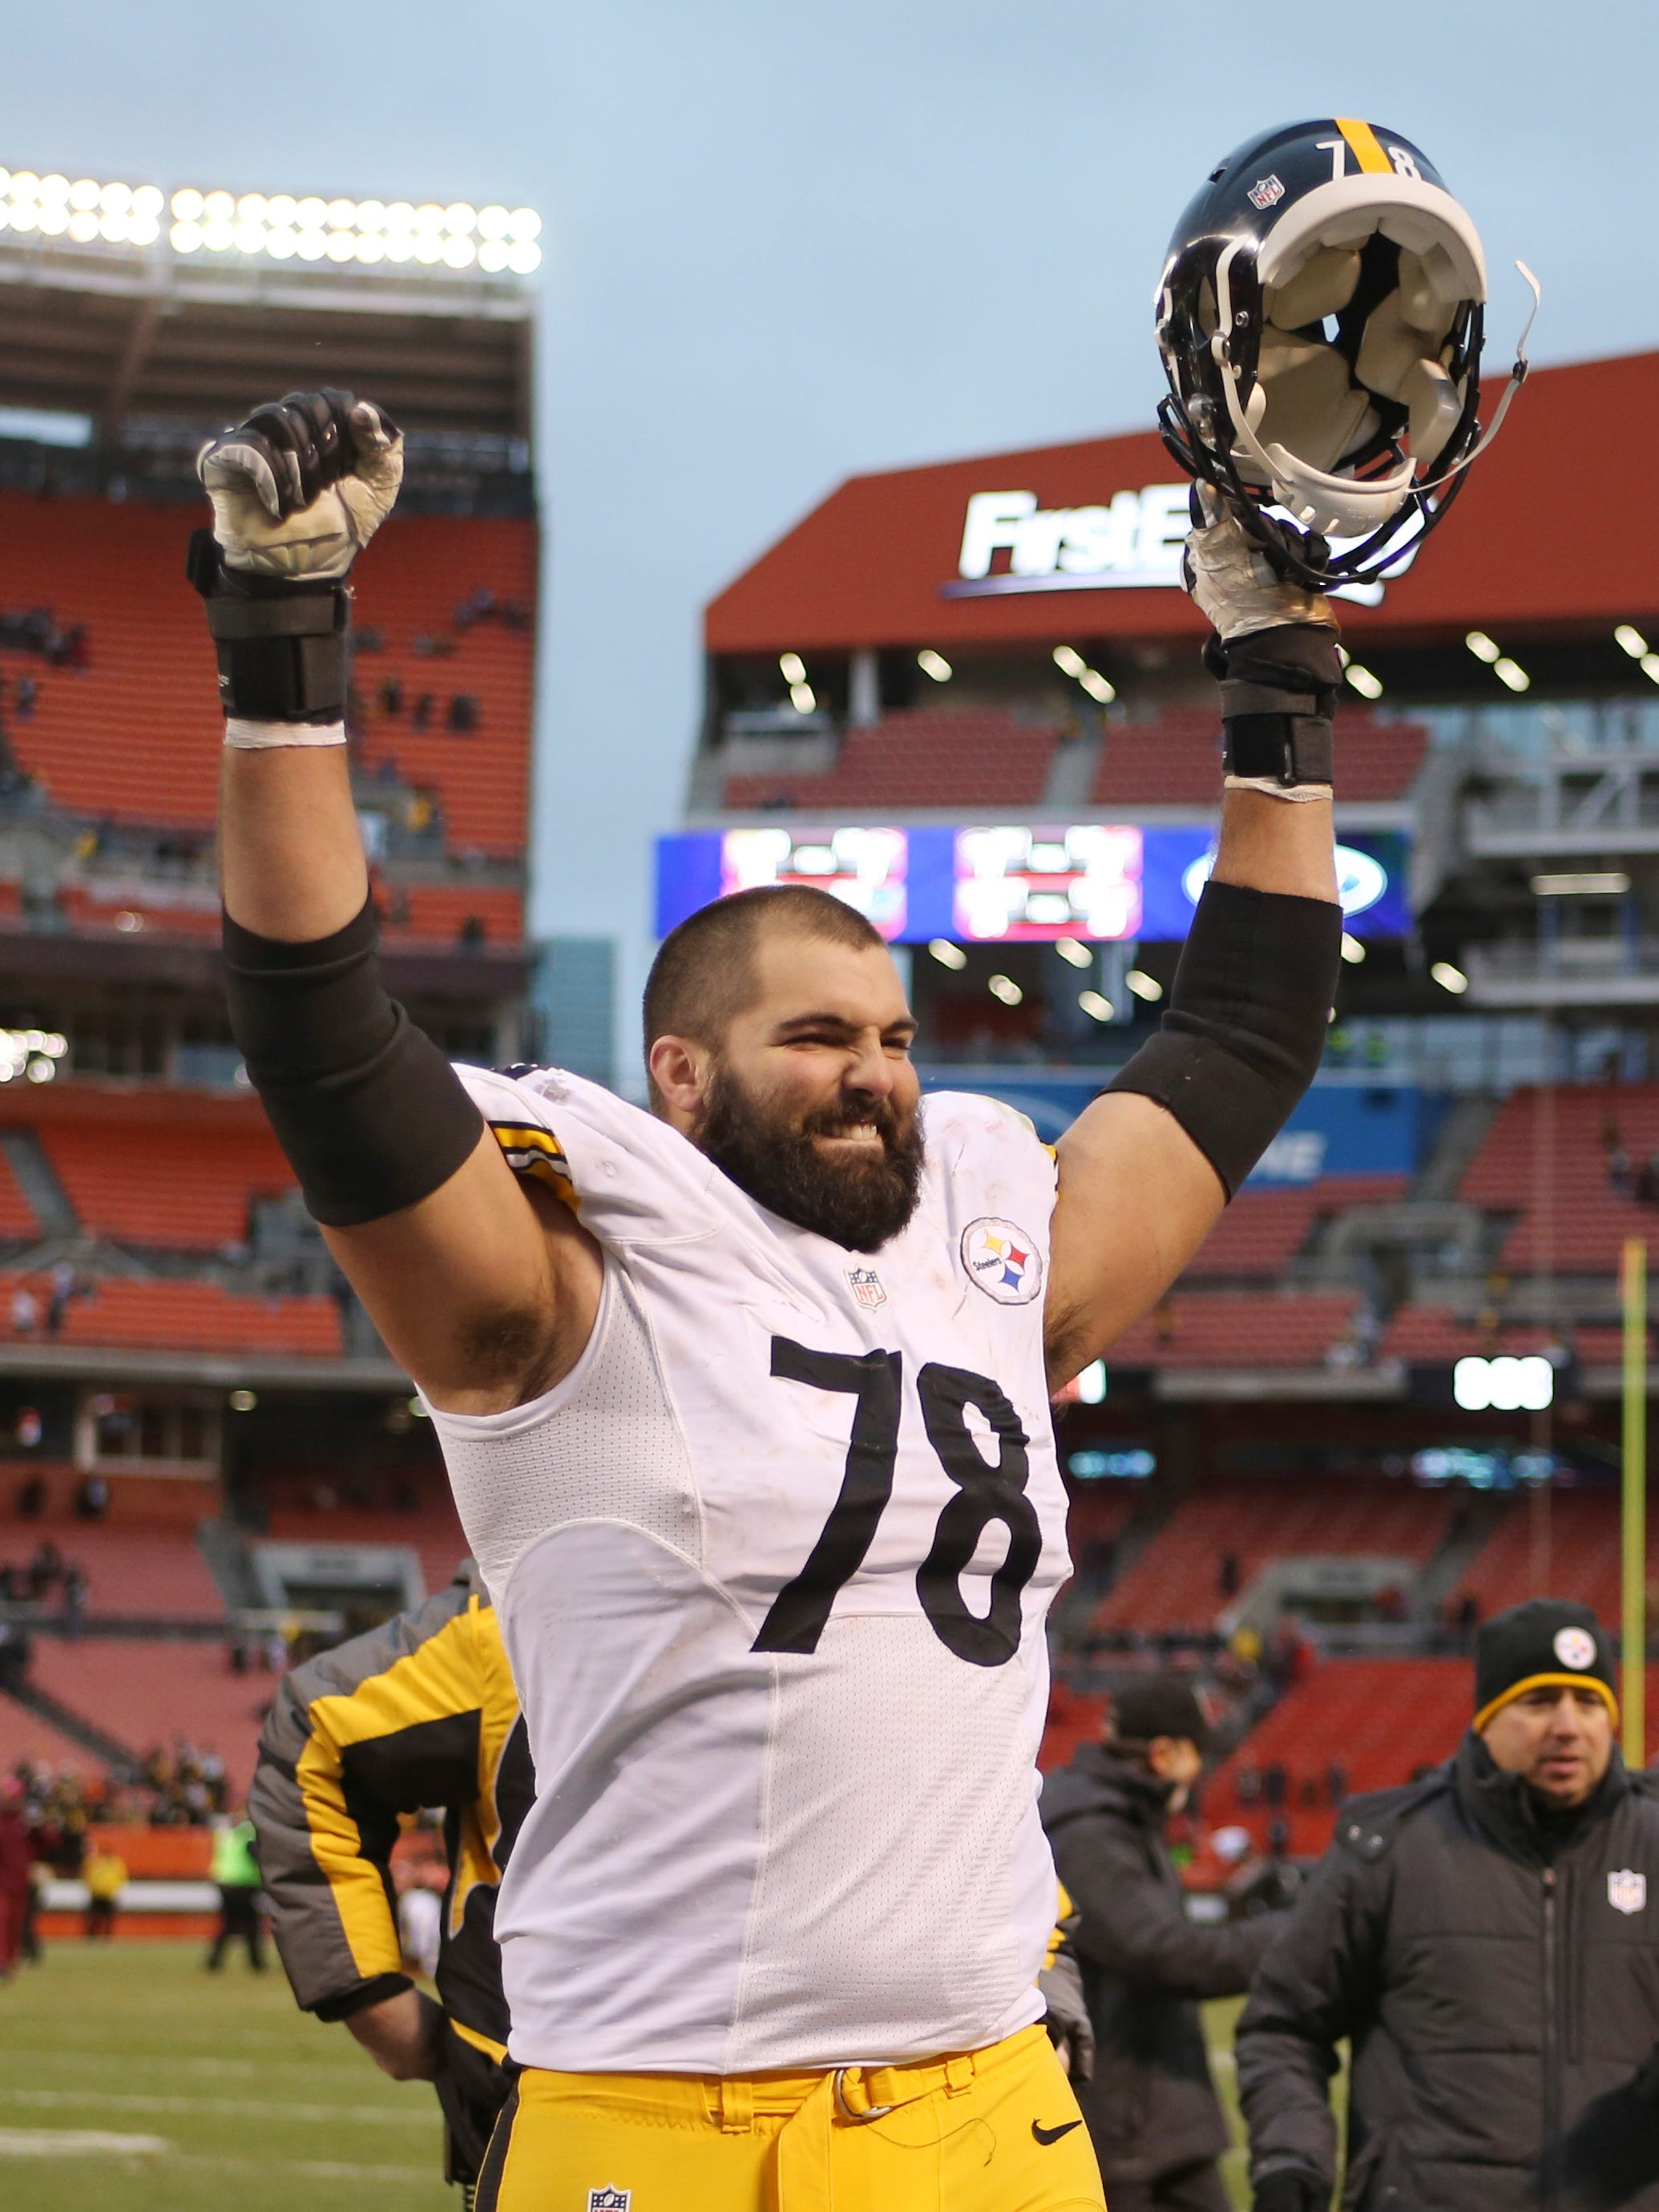 Former Steelers offensive lineman finds new home with Ravens